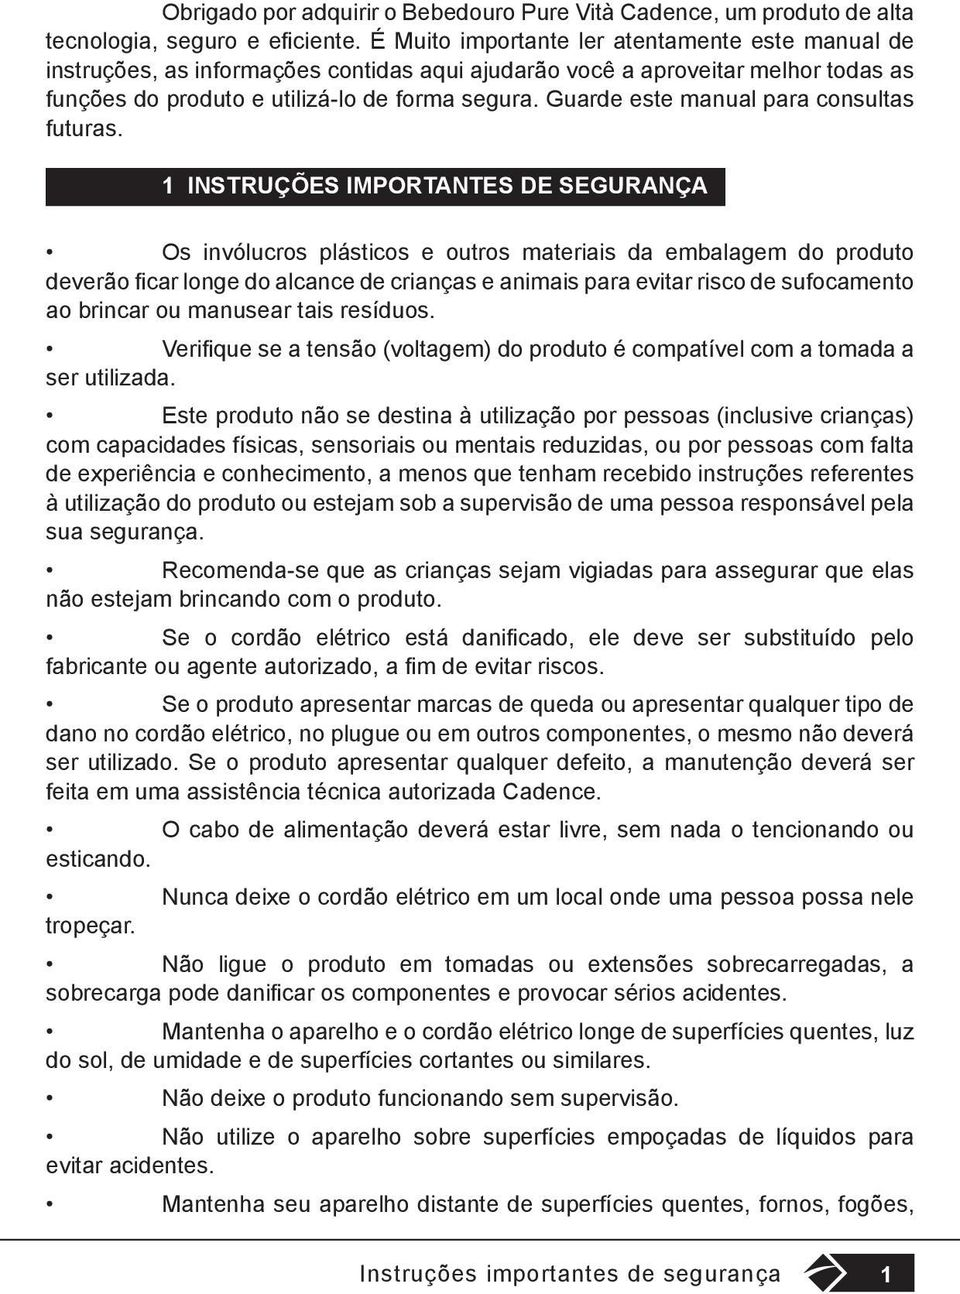 Guarde este manual para consultas futuras.